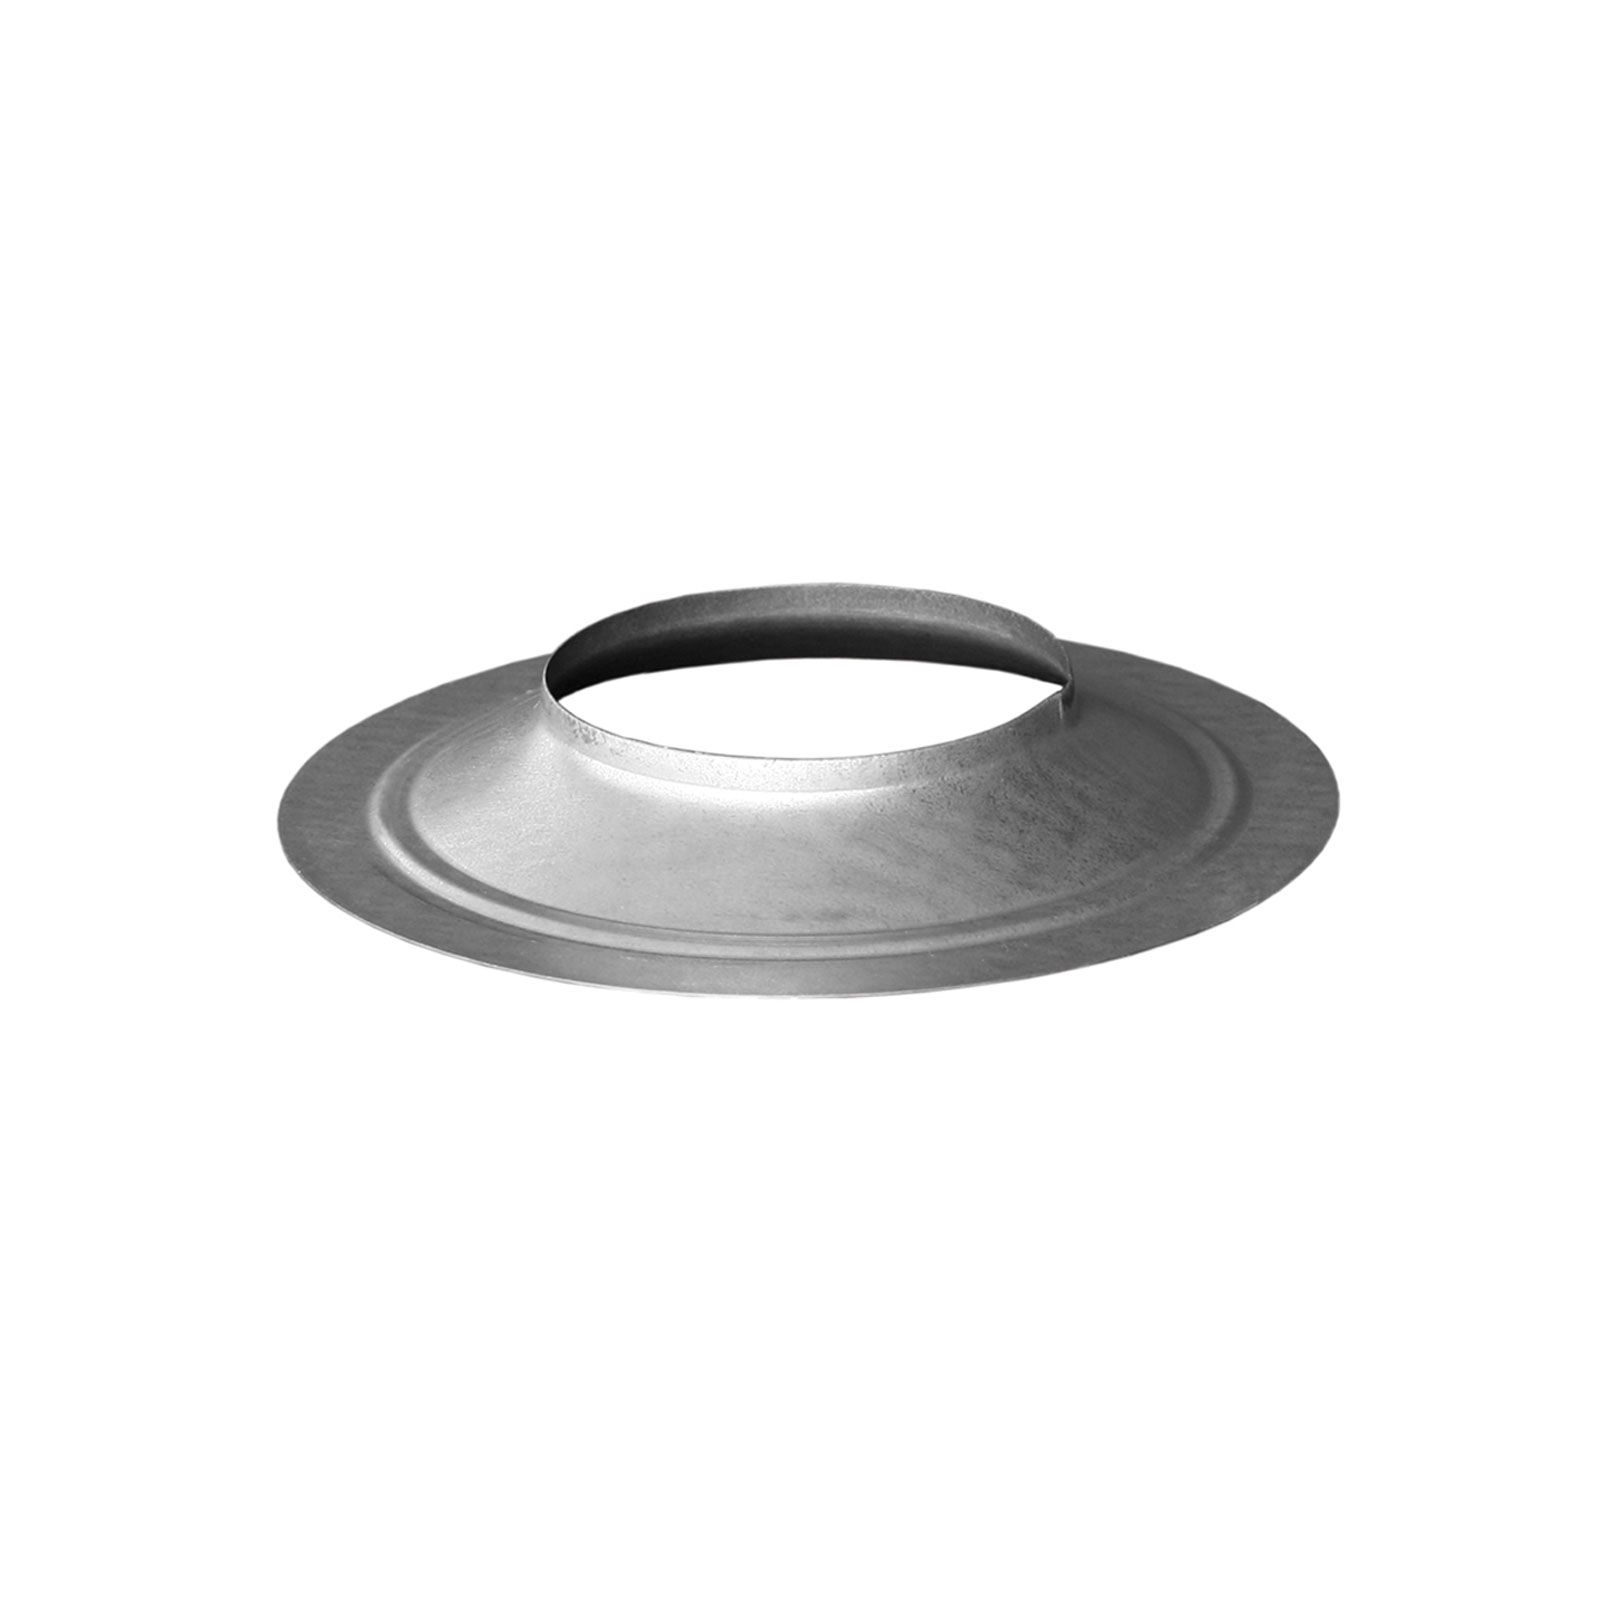 "DuraVent 3GVSC - Aluminum Storm Collar with 3"" Inner Diameter"